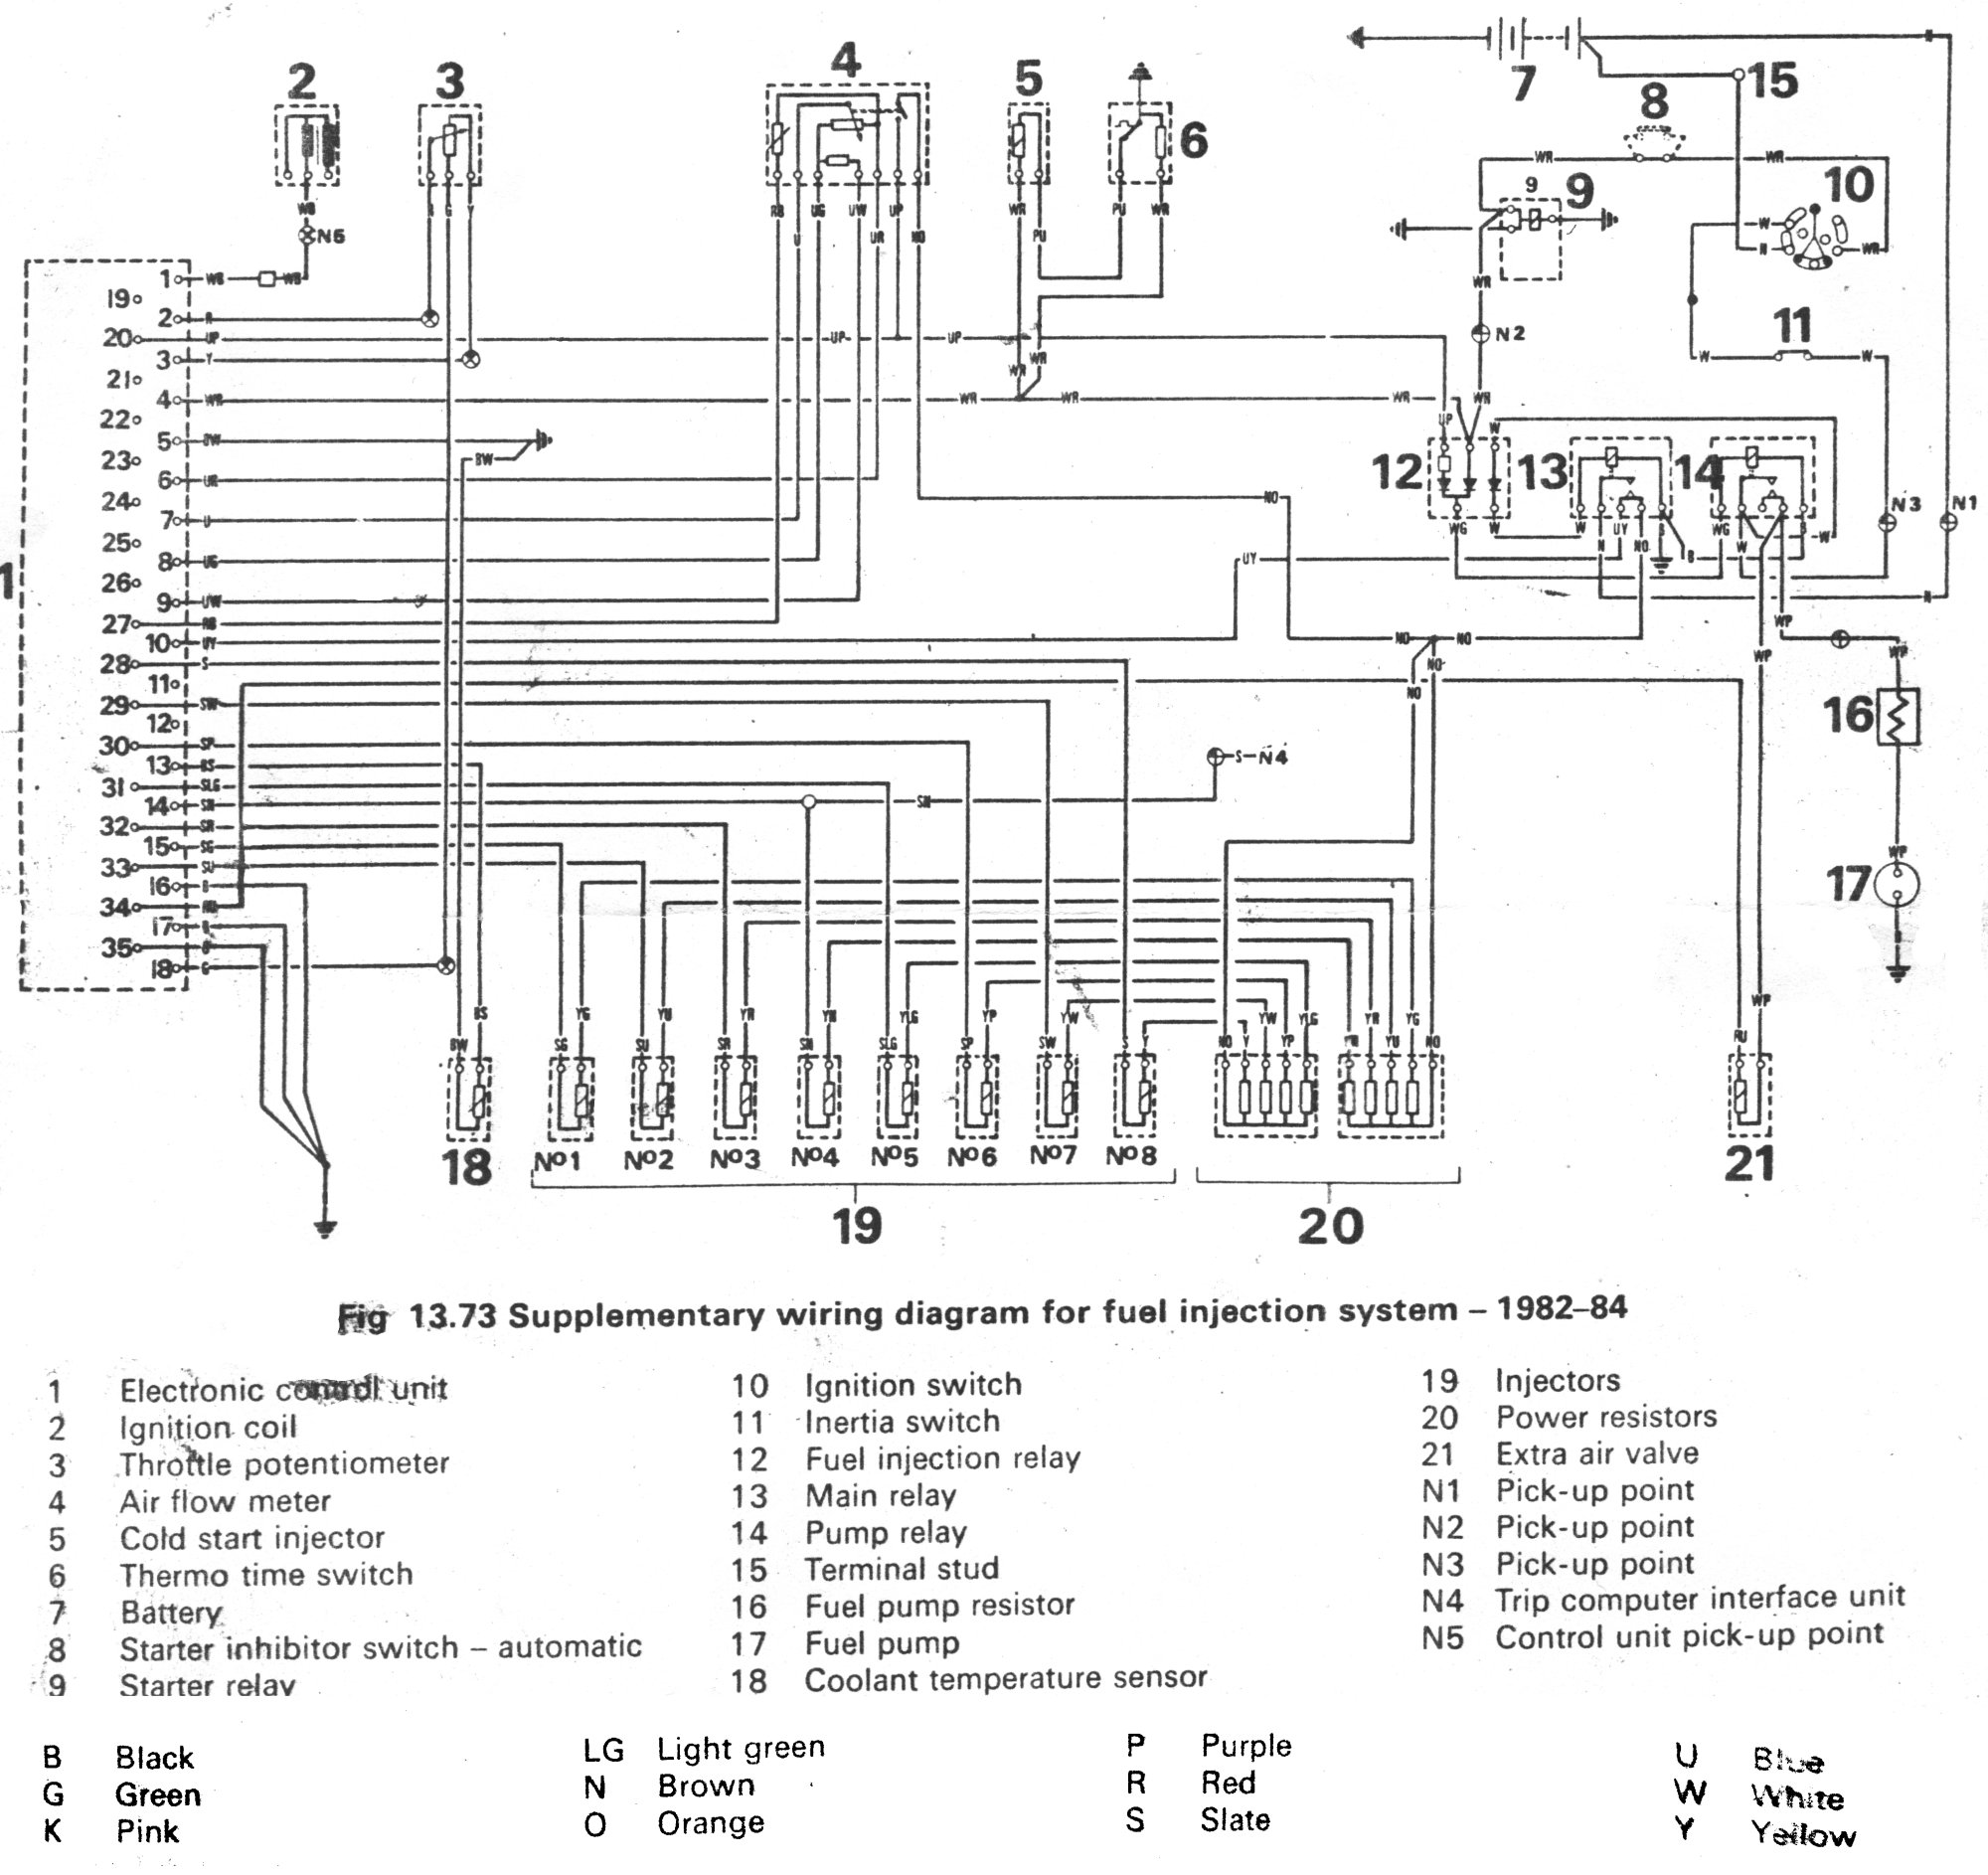 Wiring Diagram Required